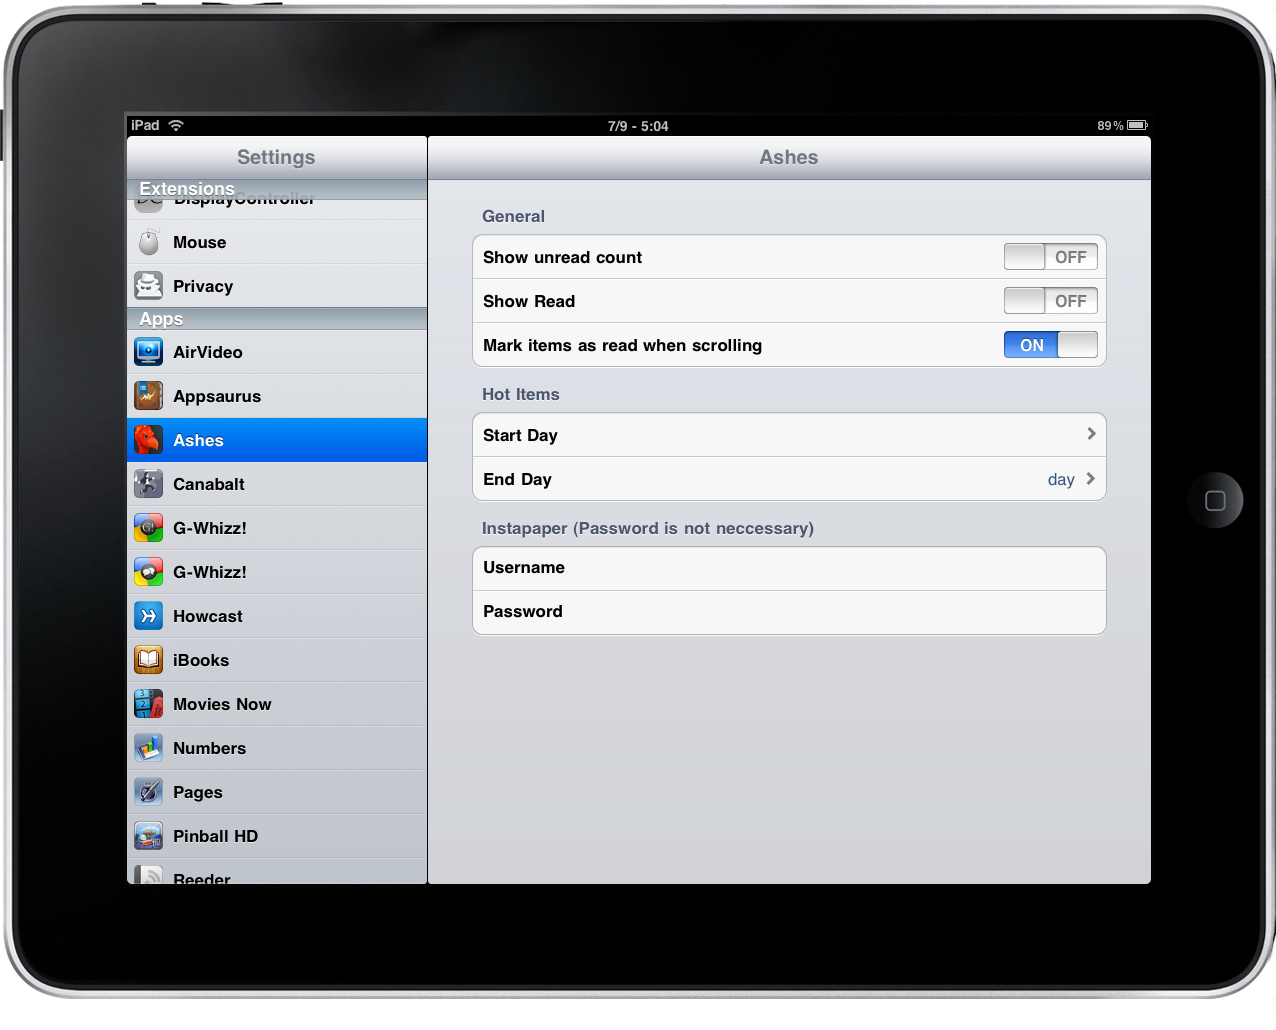 Ashes for iPad - Settings